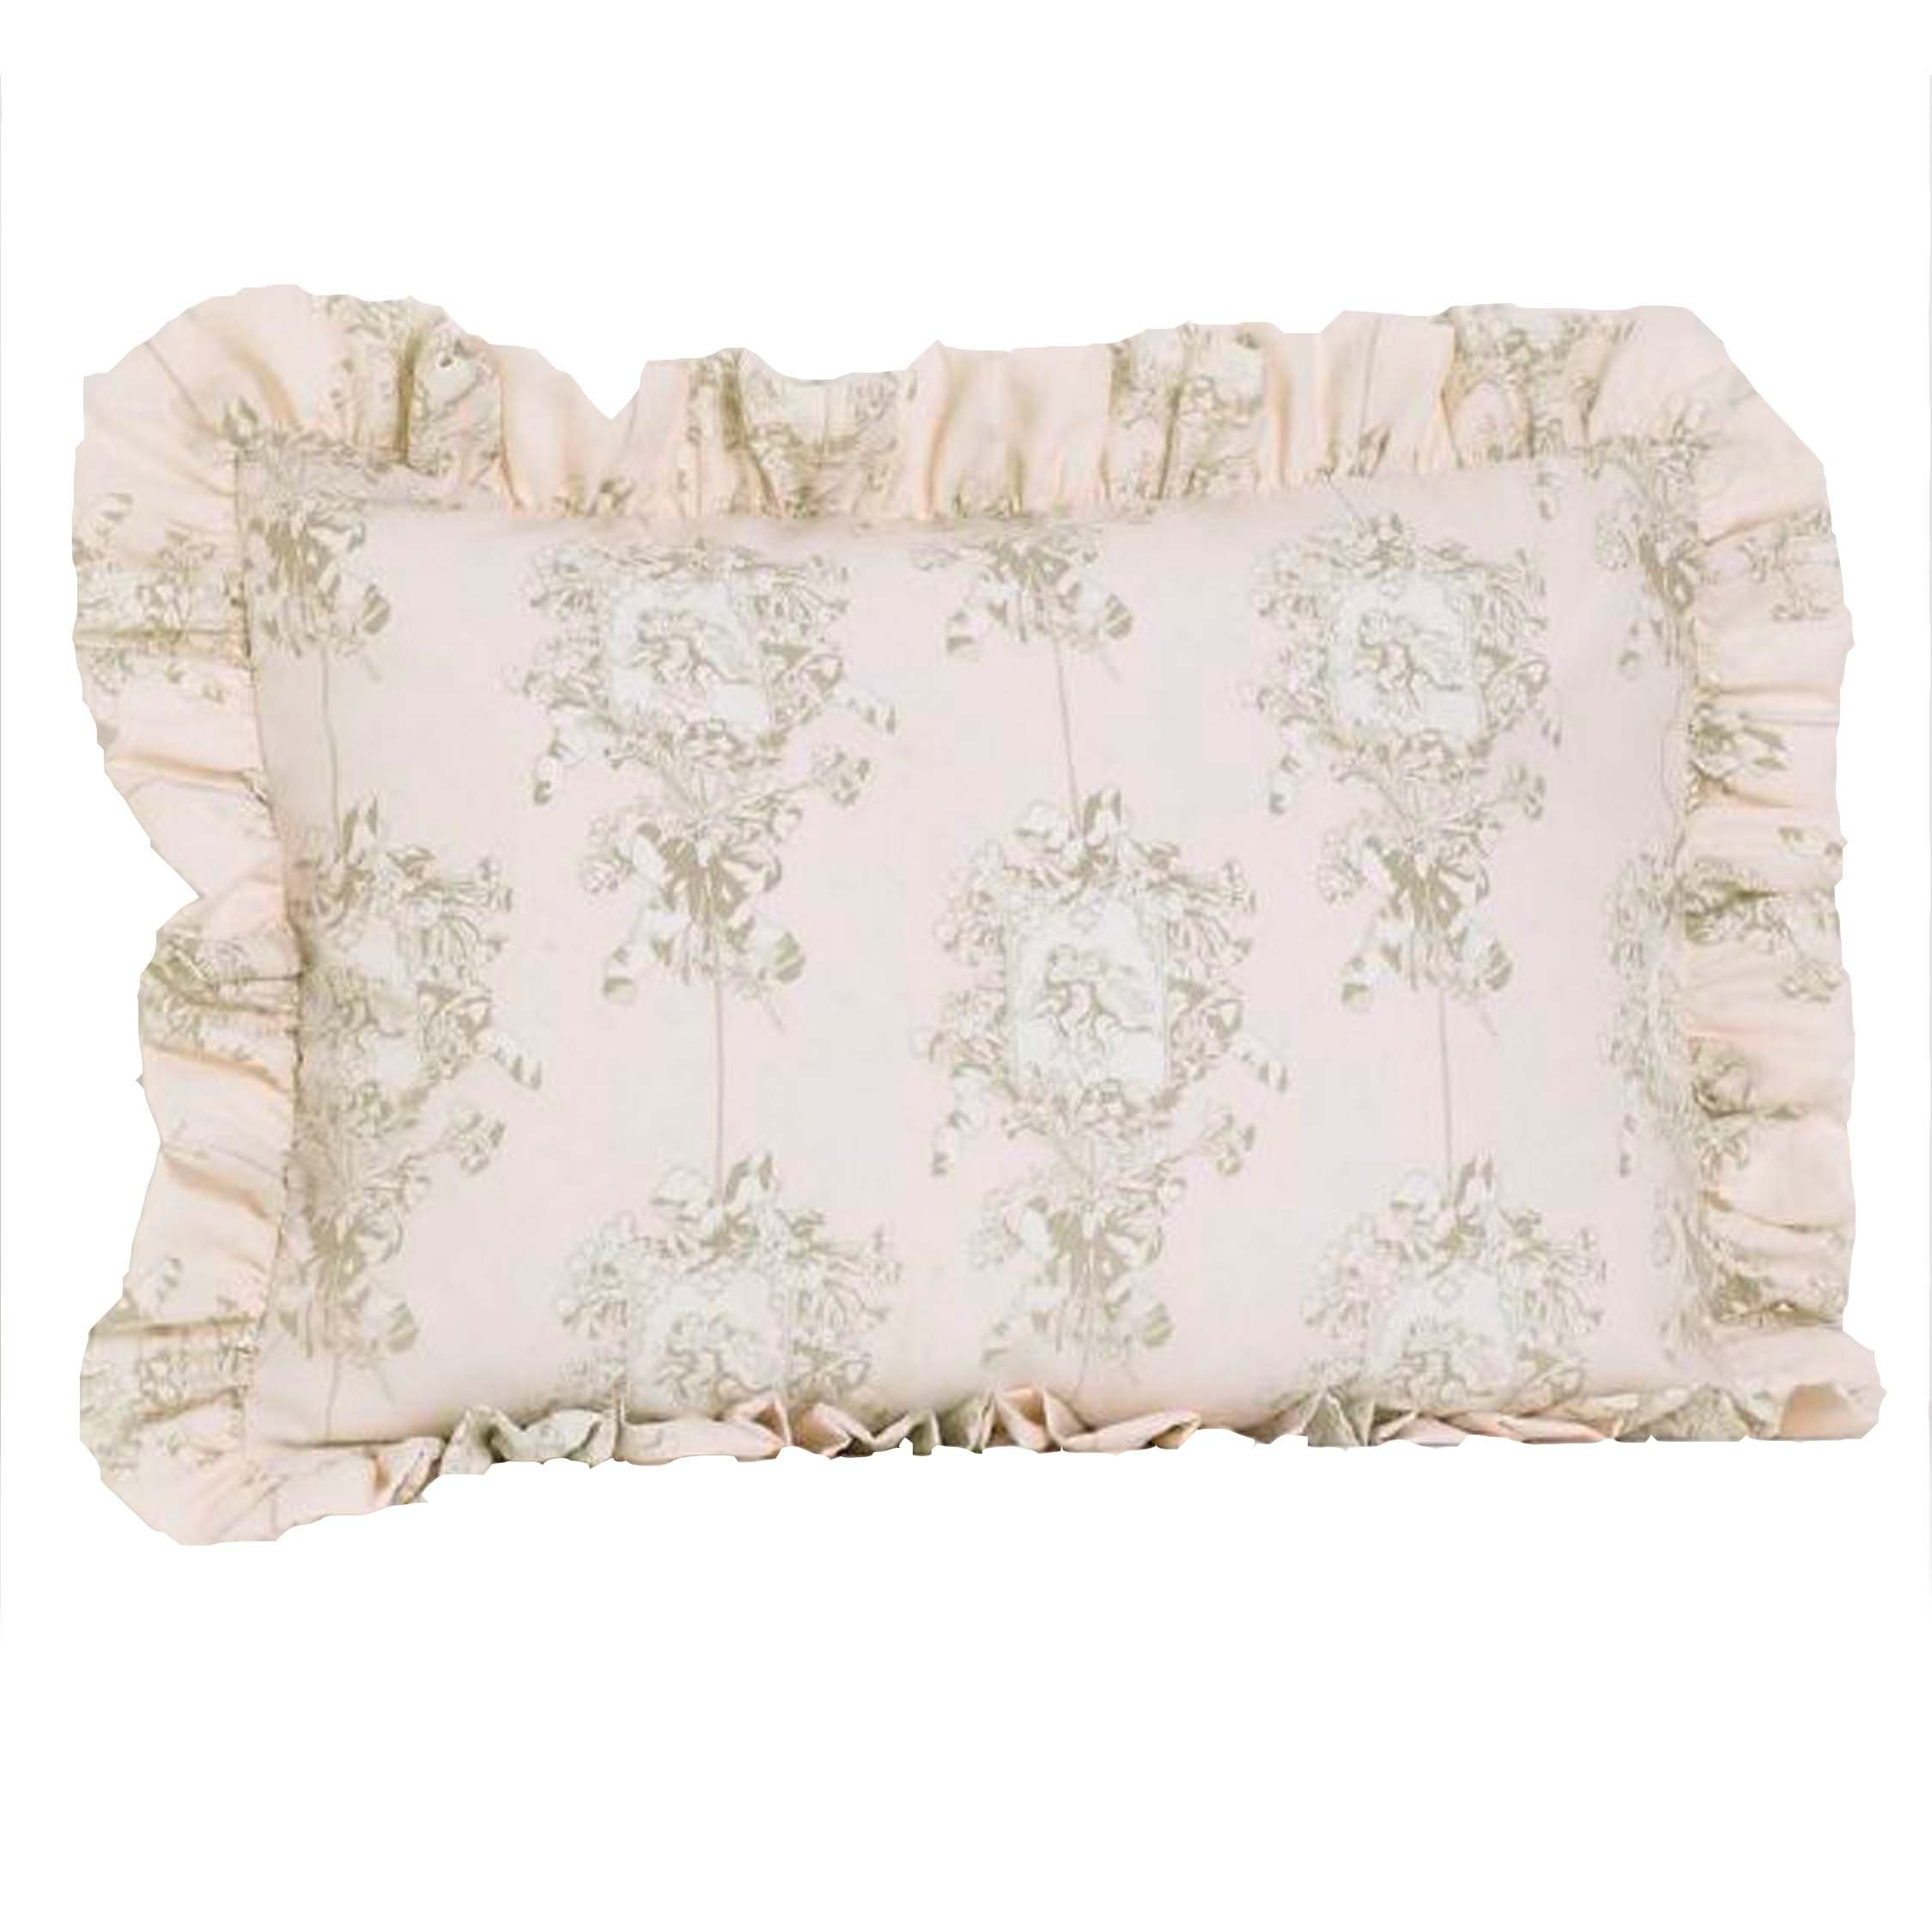 Cotton Tale Designs 100% Cotton Pink, Cream/Off White, Tan Floral Angel Toile Lollipops & Roses Standard Ruffled Pillow Sham - Girl - Pillow Cover by Cotton Tale Designs